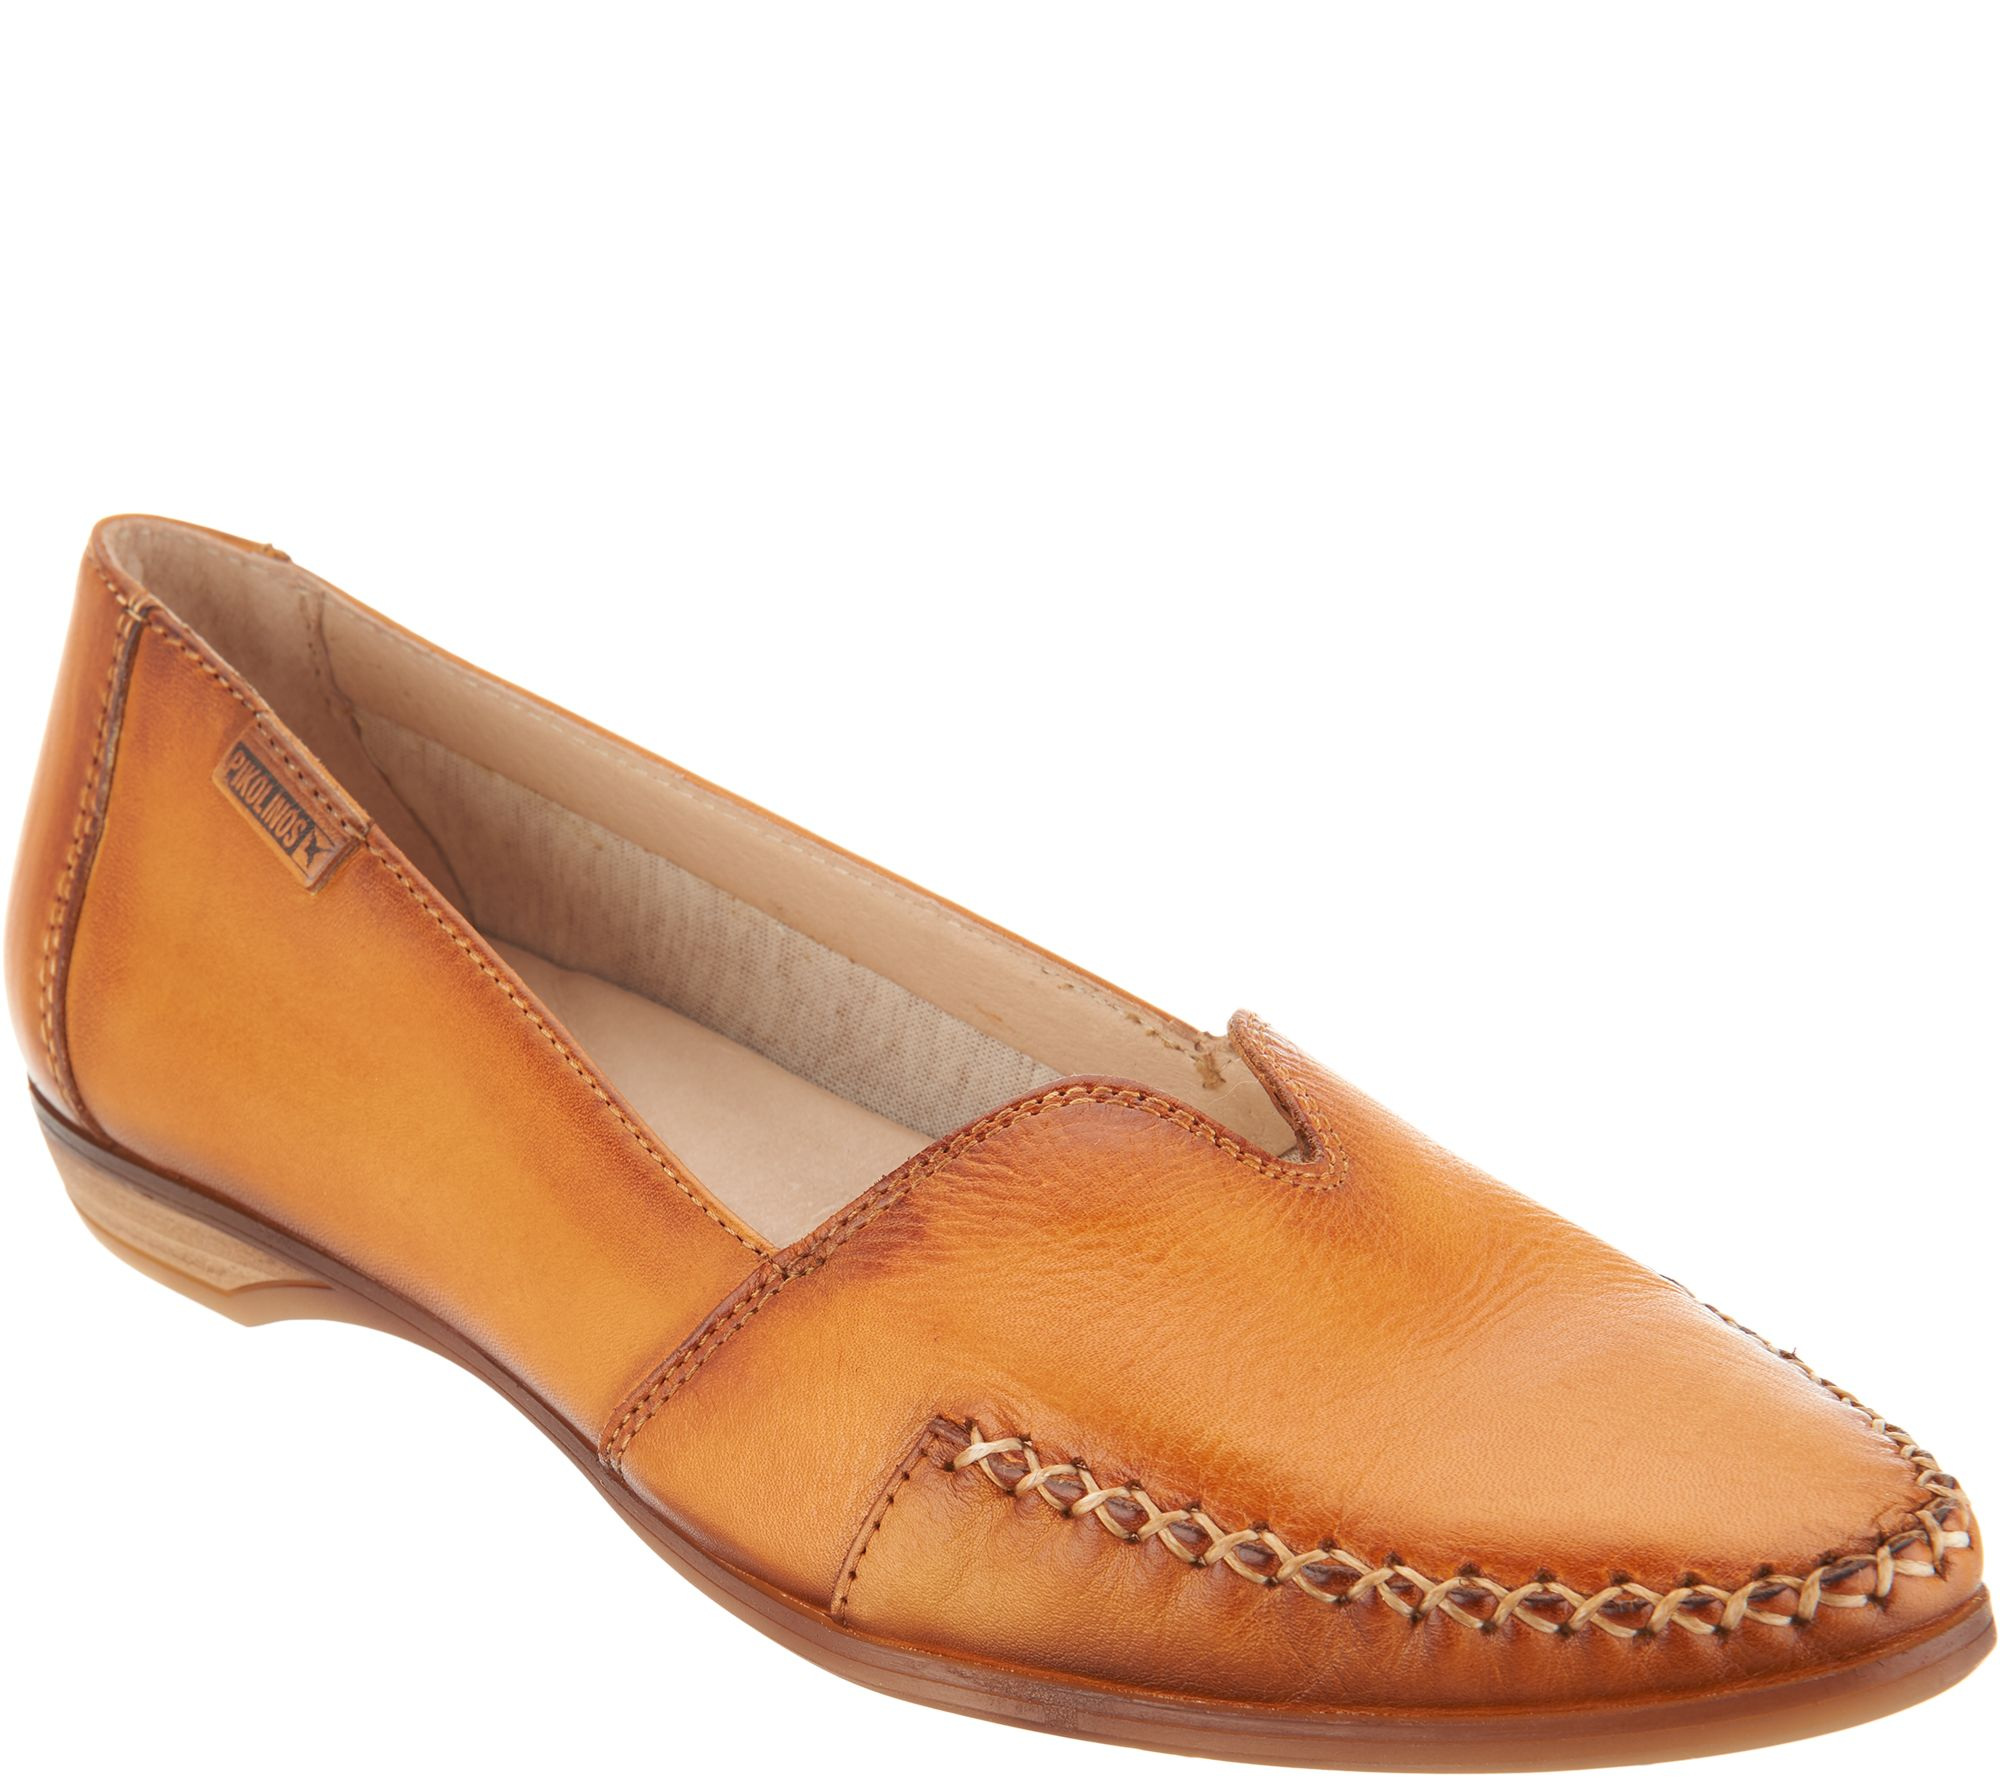 8bd48b89dcf Pikolinos Leather Pointed Toe Loafers - Bari - Page 1 — QVC.com